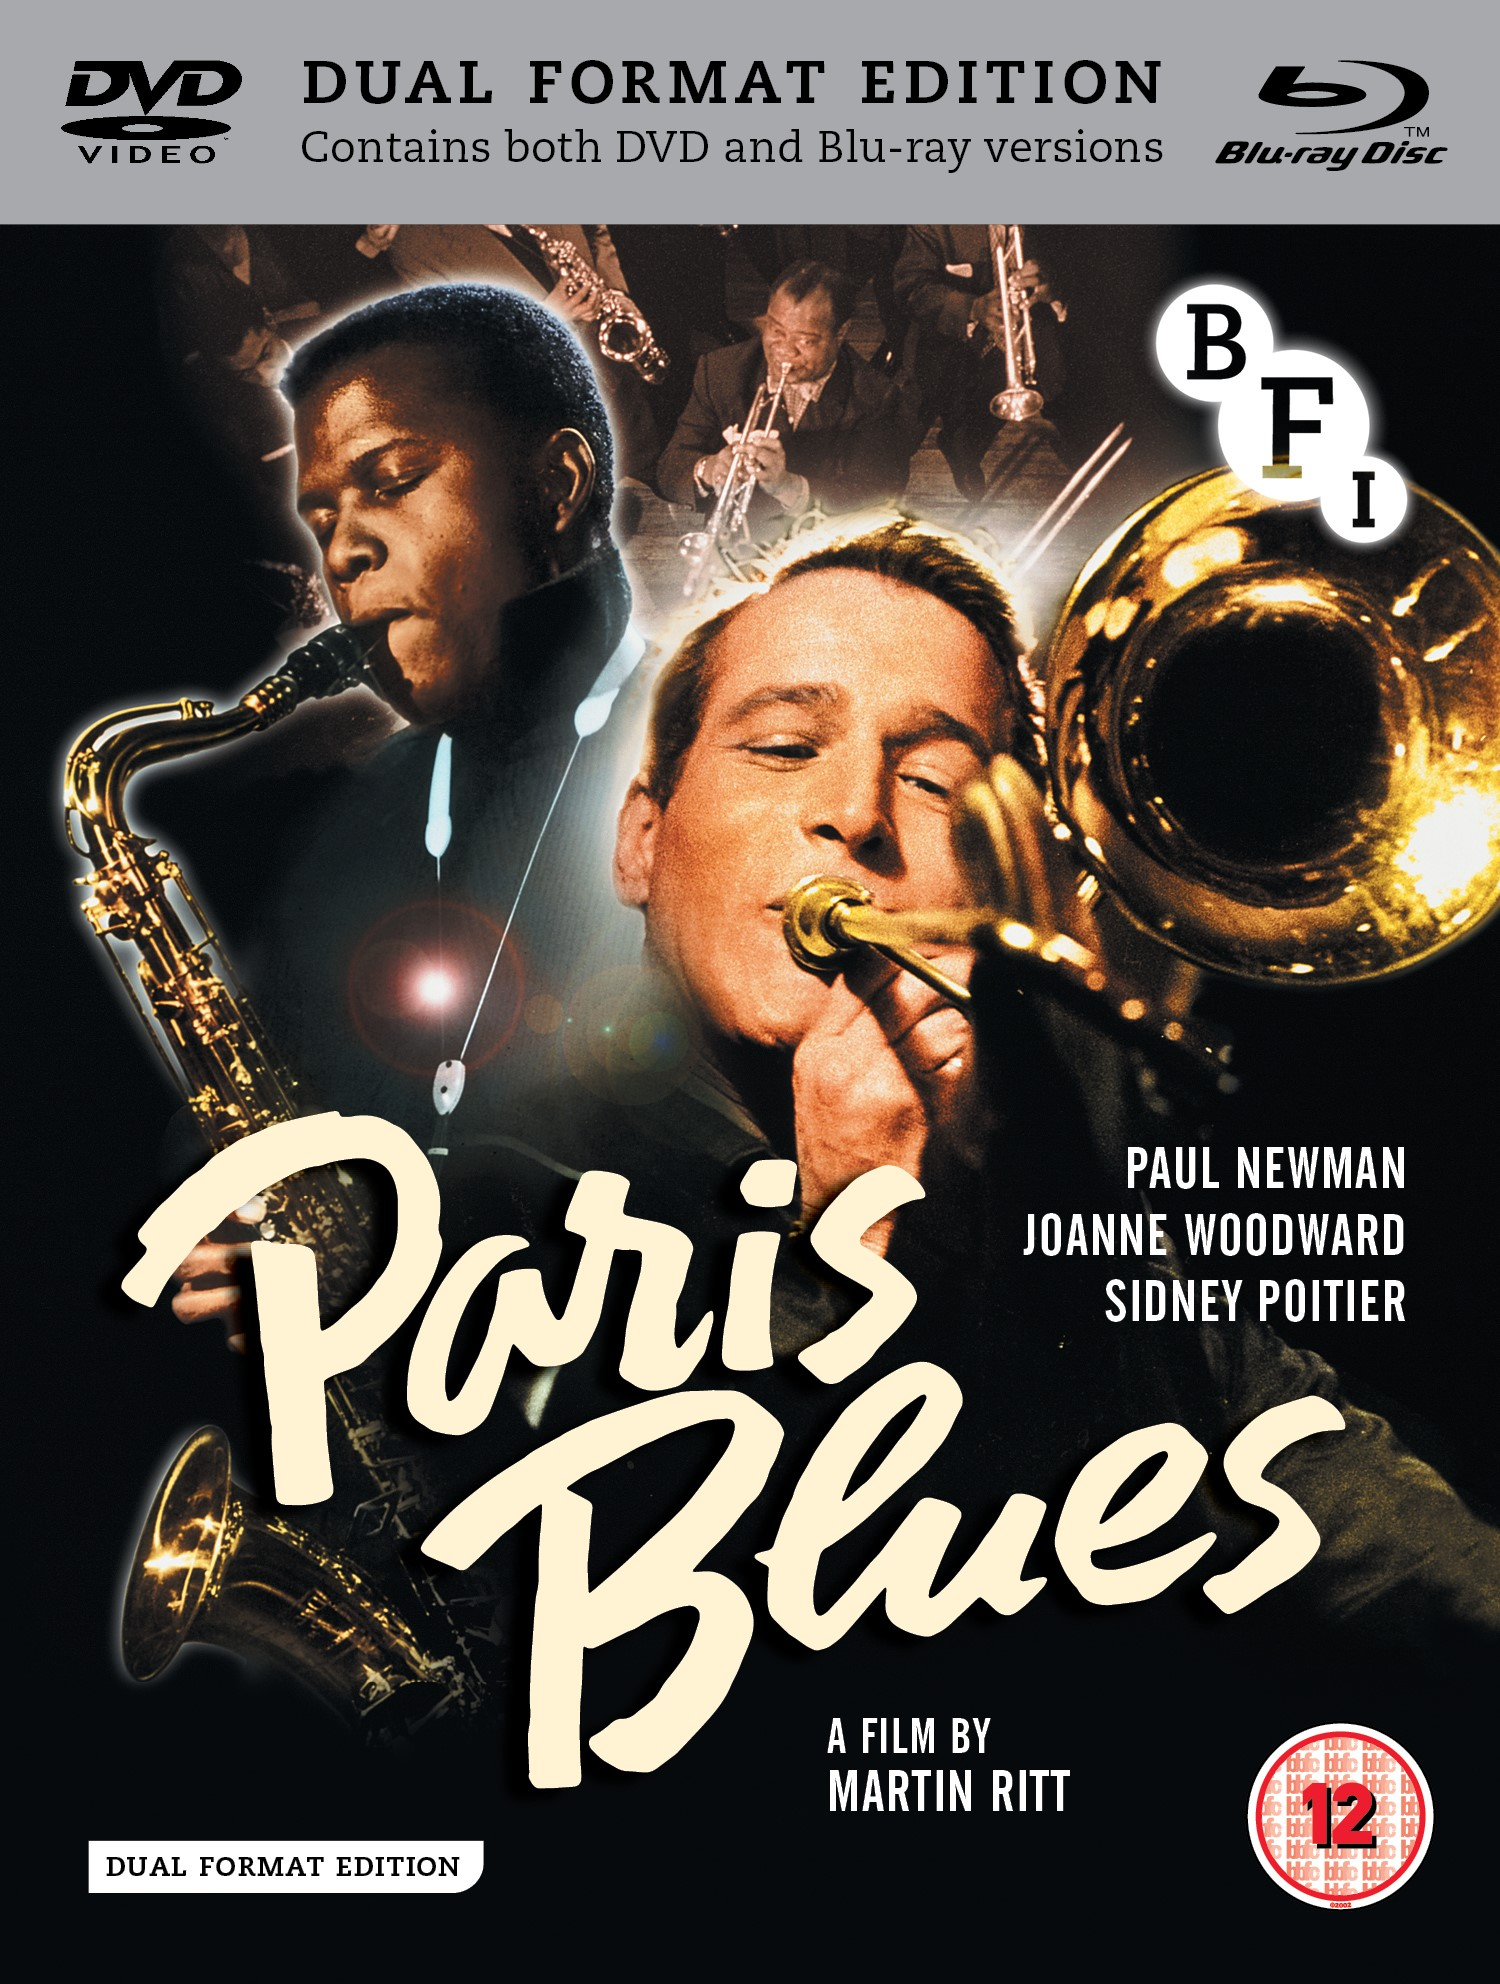 Buy Paris Blues (Dual Format Edition)